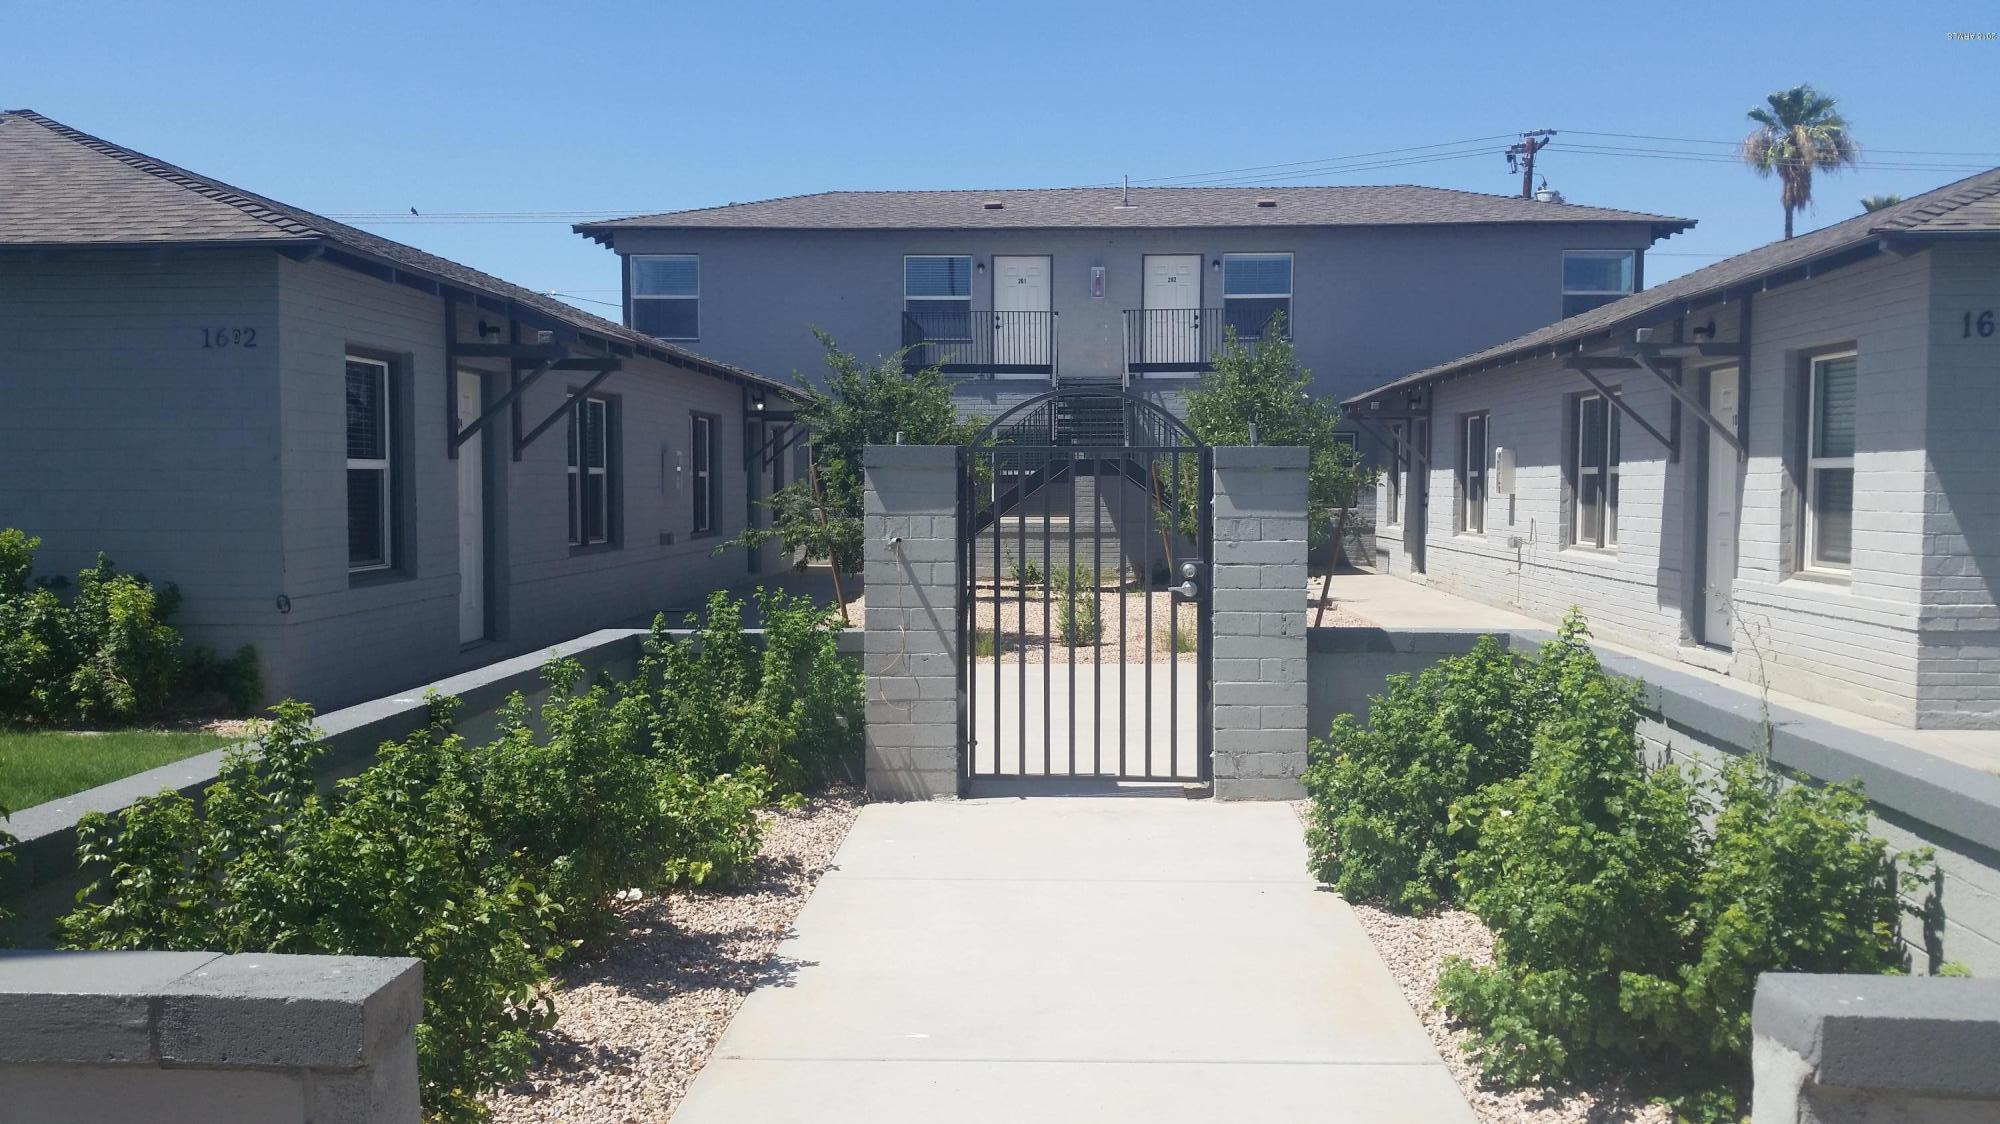 1602 W McDowell Road Unit 107 Phoenix, AZ 85007 - MLS #: 5824969